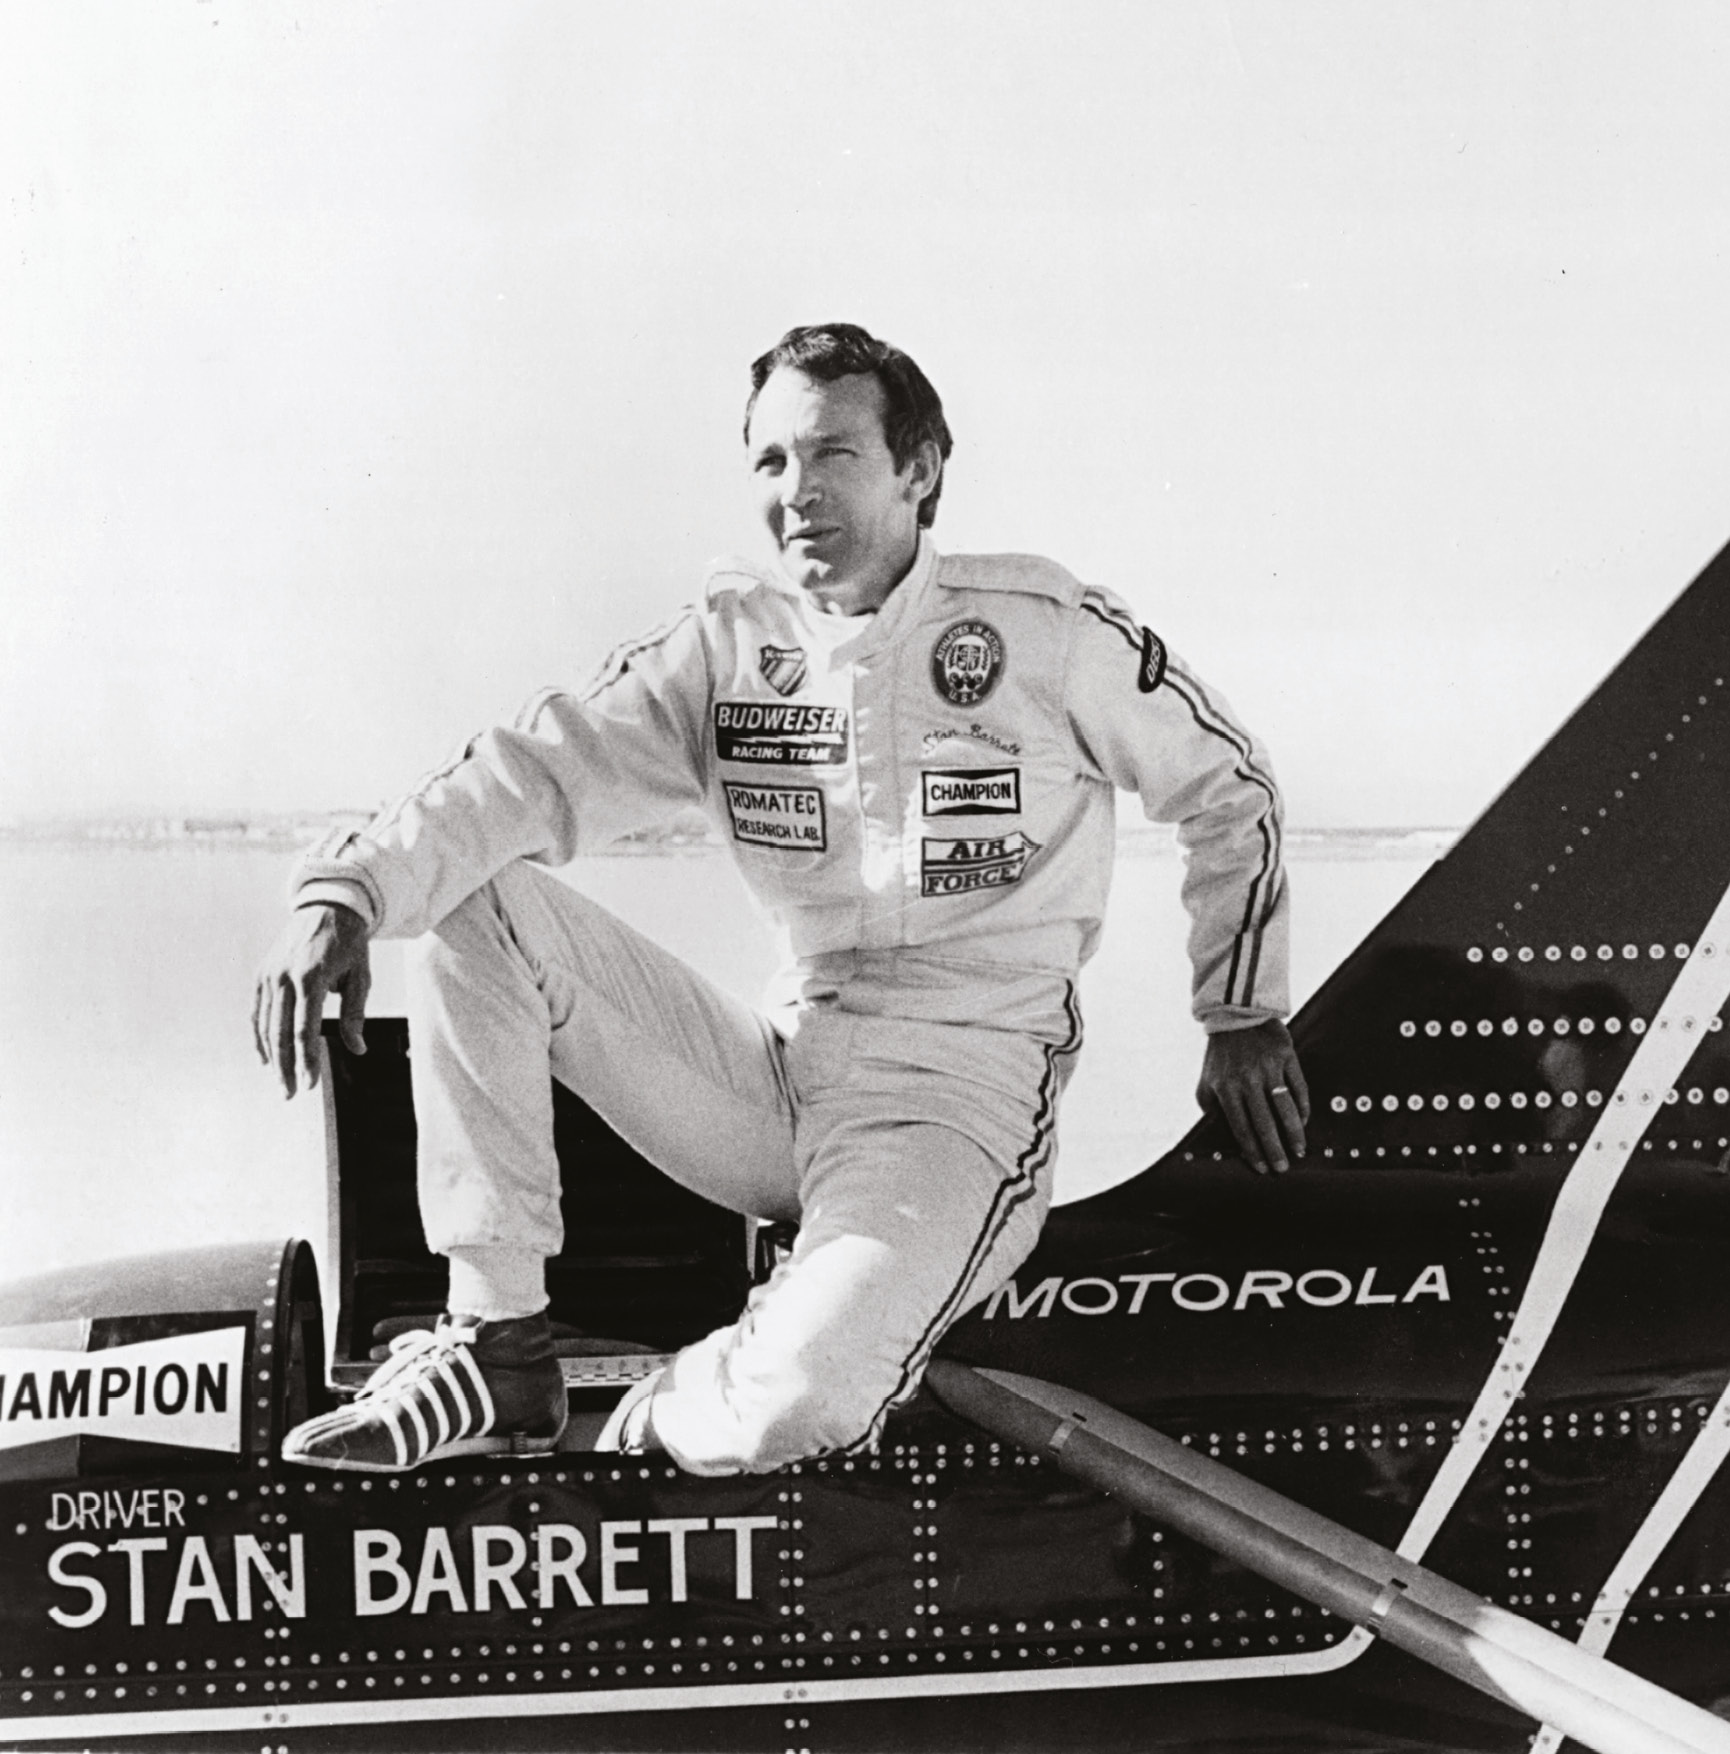 Barrett and the Rocket's run (right) might have been dismissed by critics, but he still thinks of himself as the first man to break the sound barrier